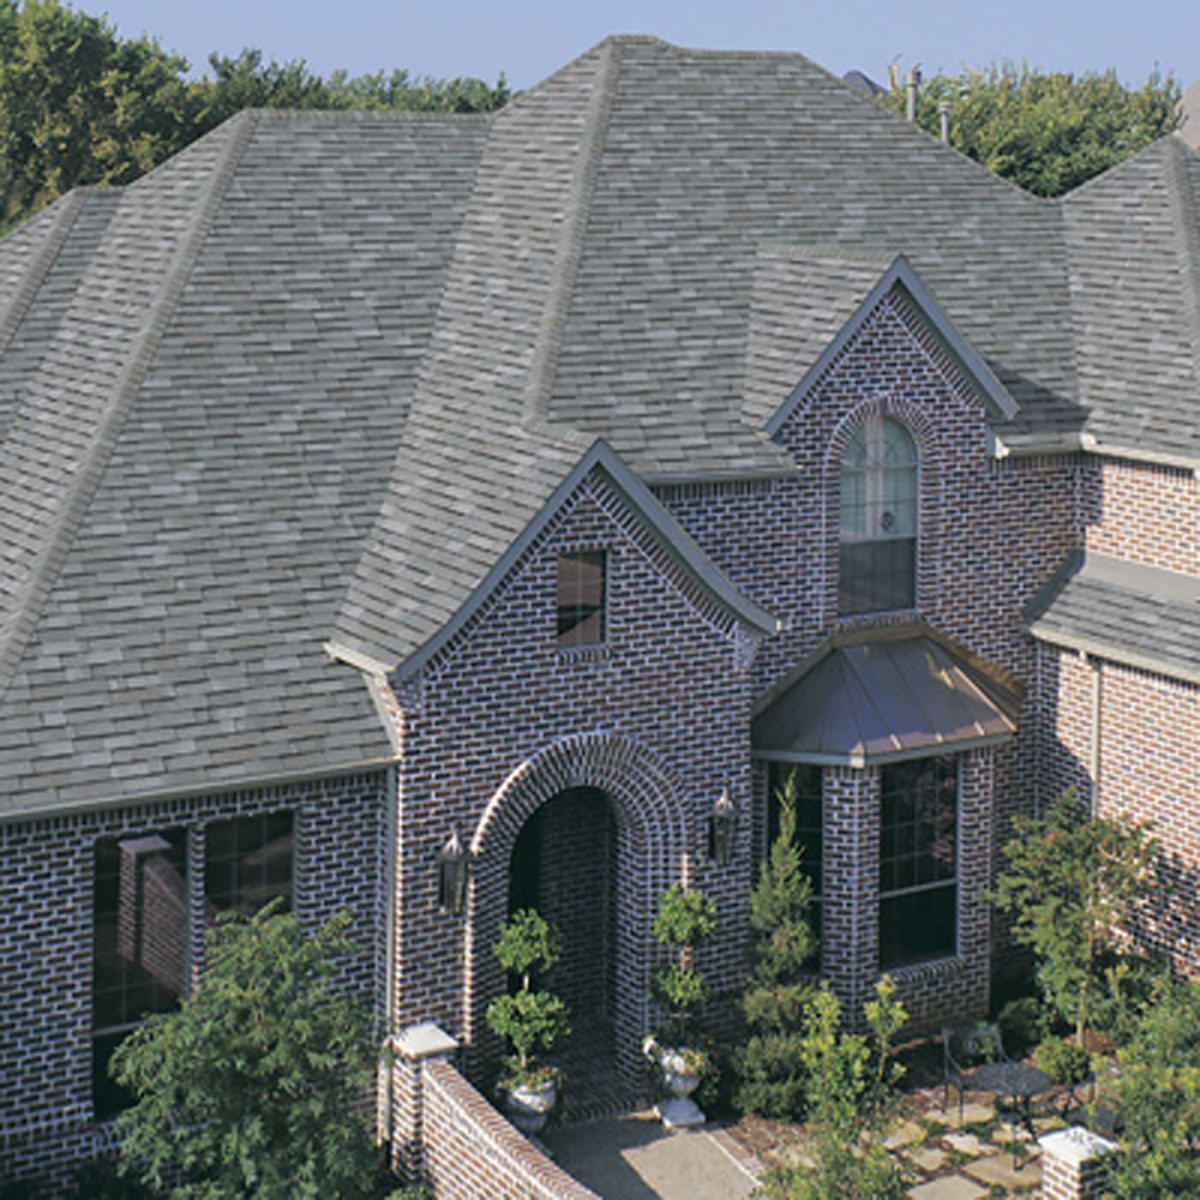 Heritage Weathered Wood Shingles | Heritage Shingles | Wooden Shingles